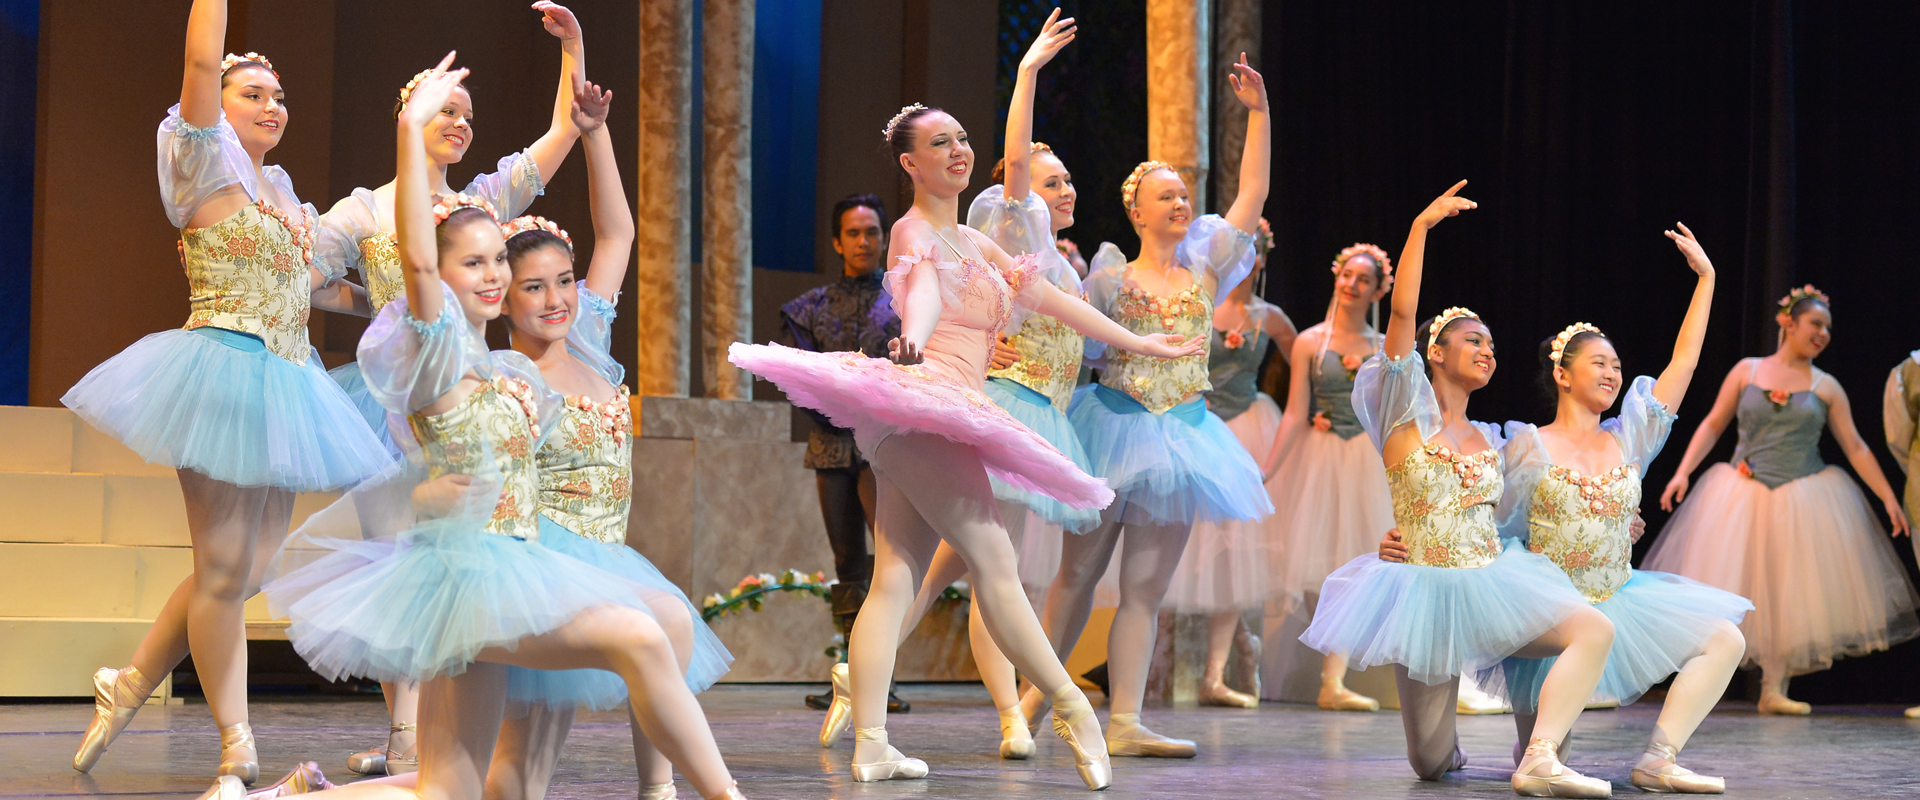 Civic Youth Ballet performance